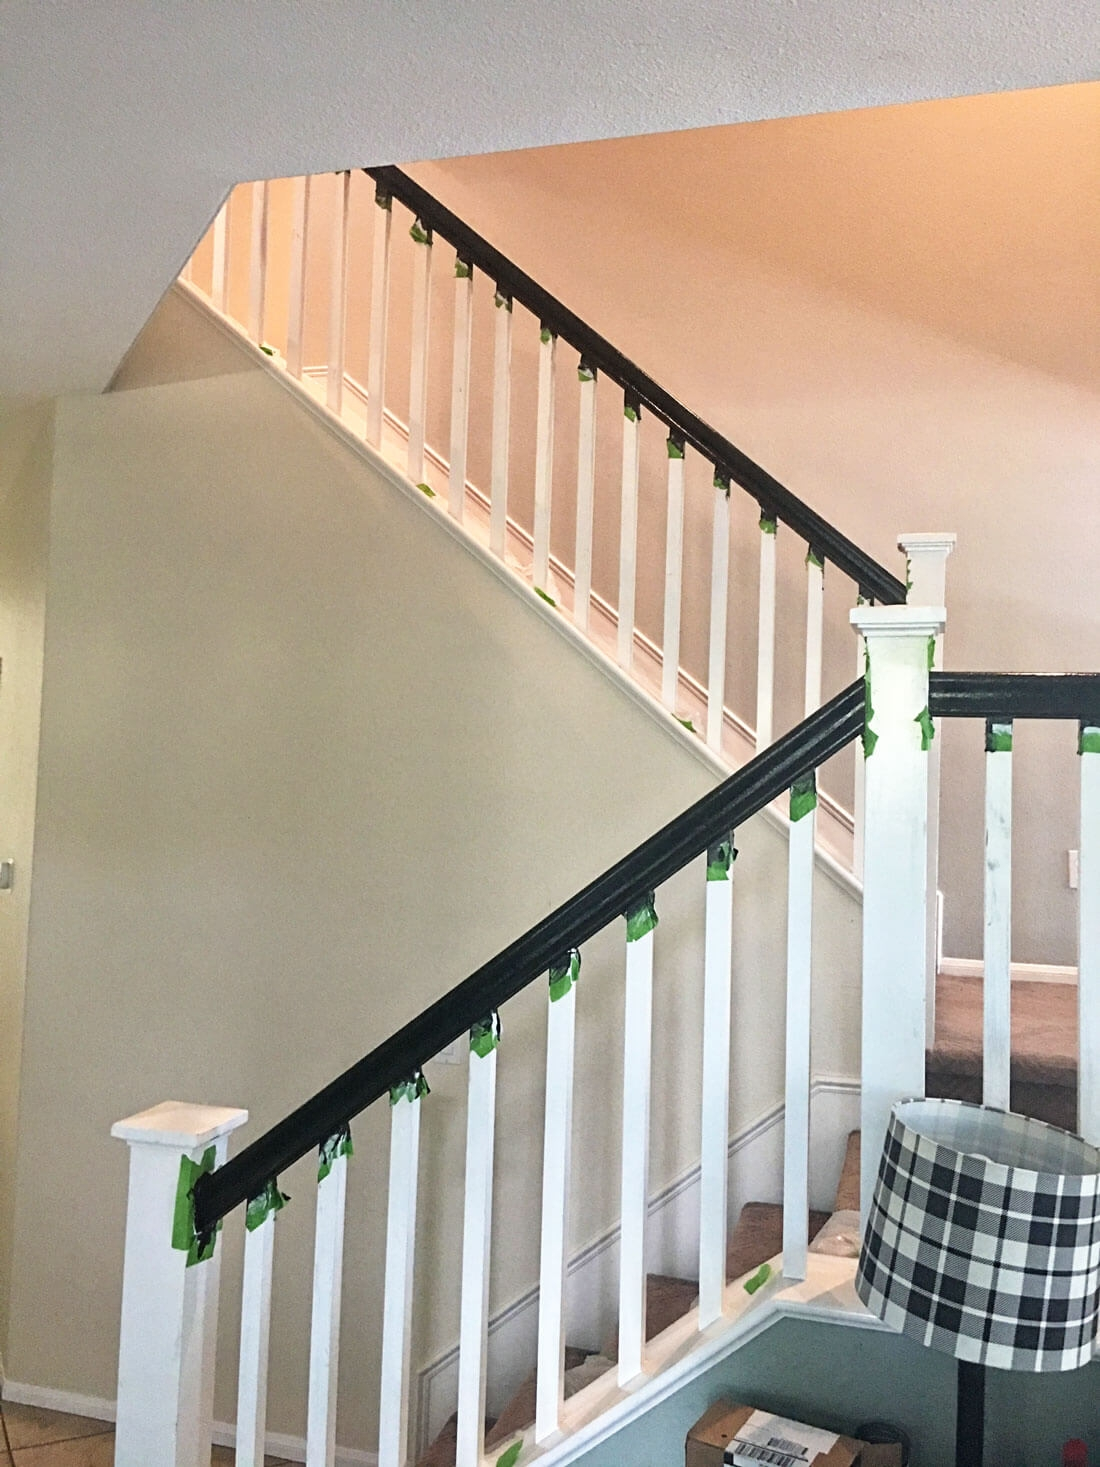 How To Paint Your Stair Railing And Banister Black From 30Daysblog | White Railing Black Spindles | Porch | Iron Balusters | Wrought Iron | Porch Railing | Trex Deck